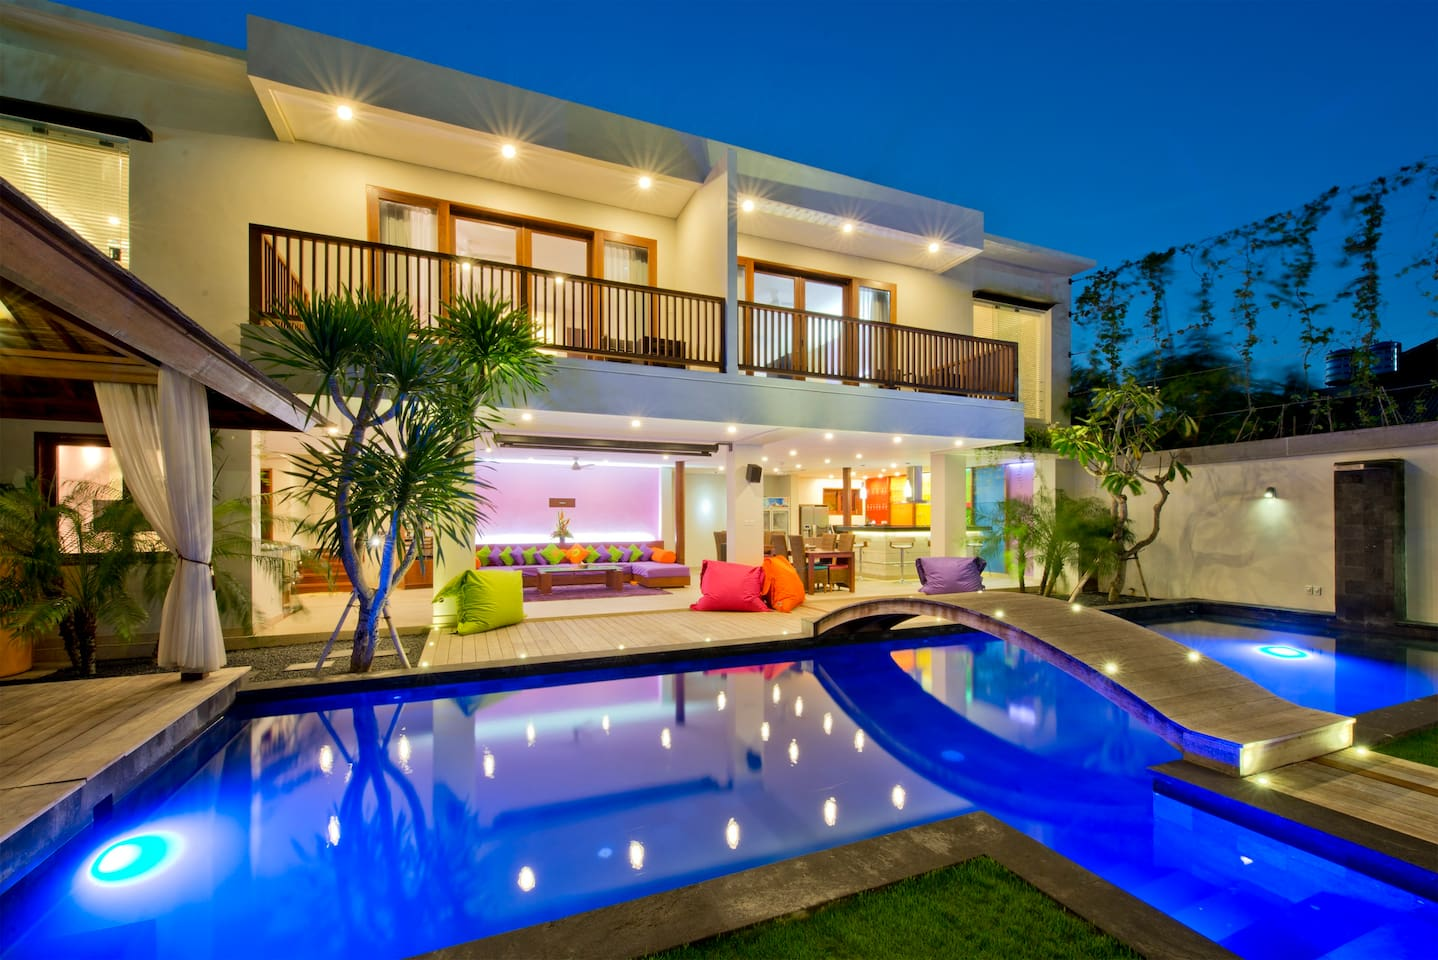 Main building with Garden / Pool / Kitchen / Sofa's on the ground floor and 2 bedrooms upstairs